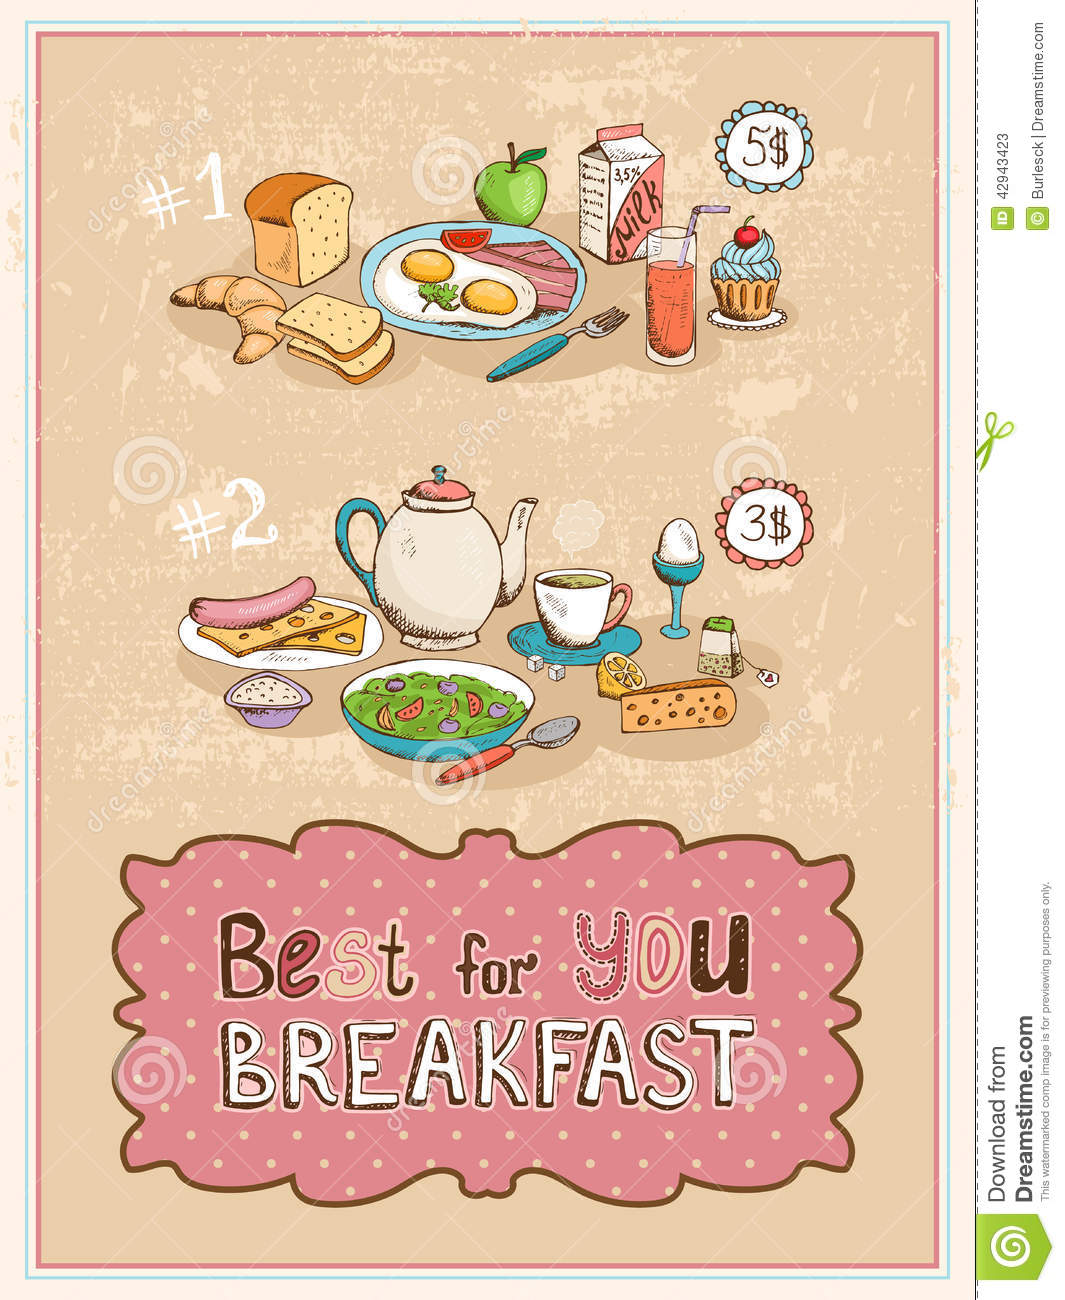 ... orange juice croissant eggs bacon cupcake and apple and the other with